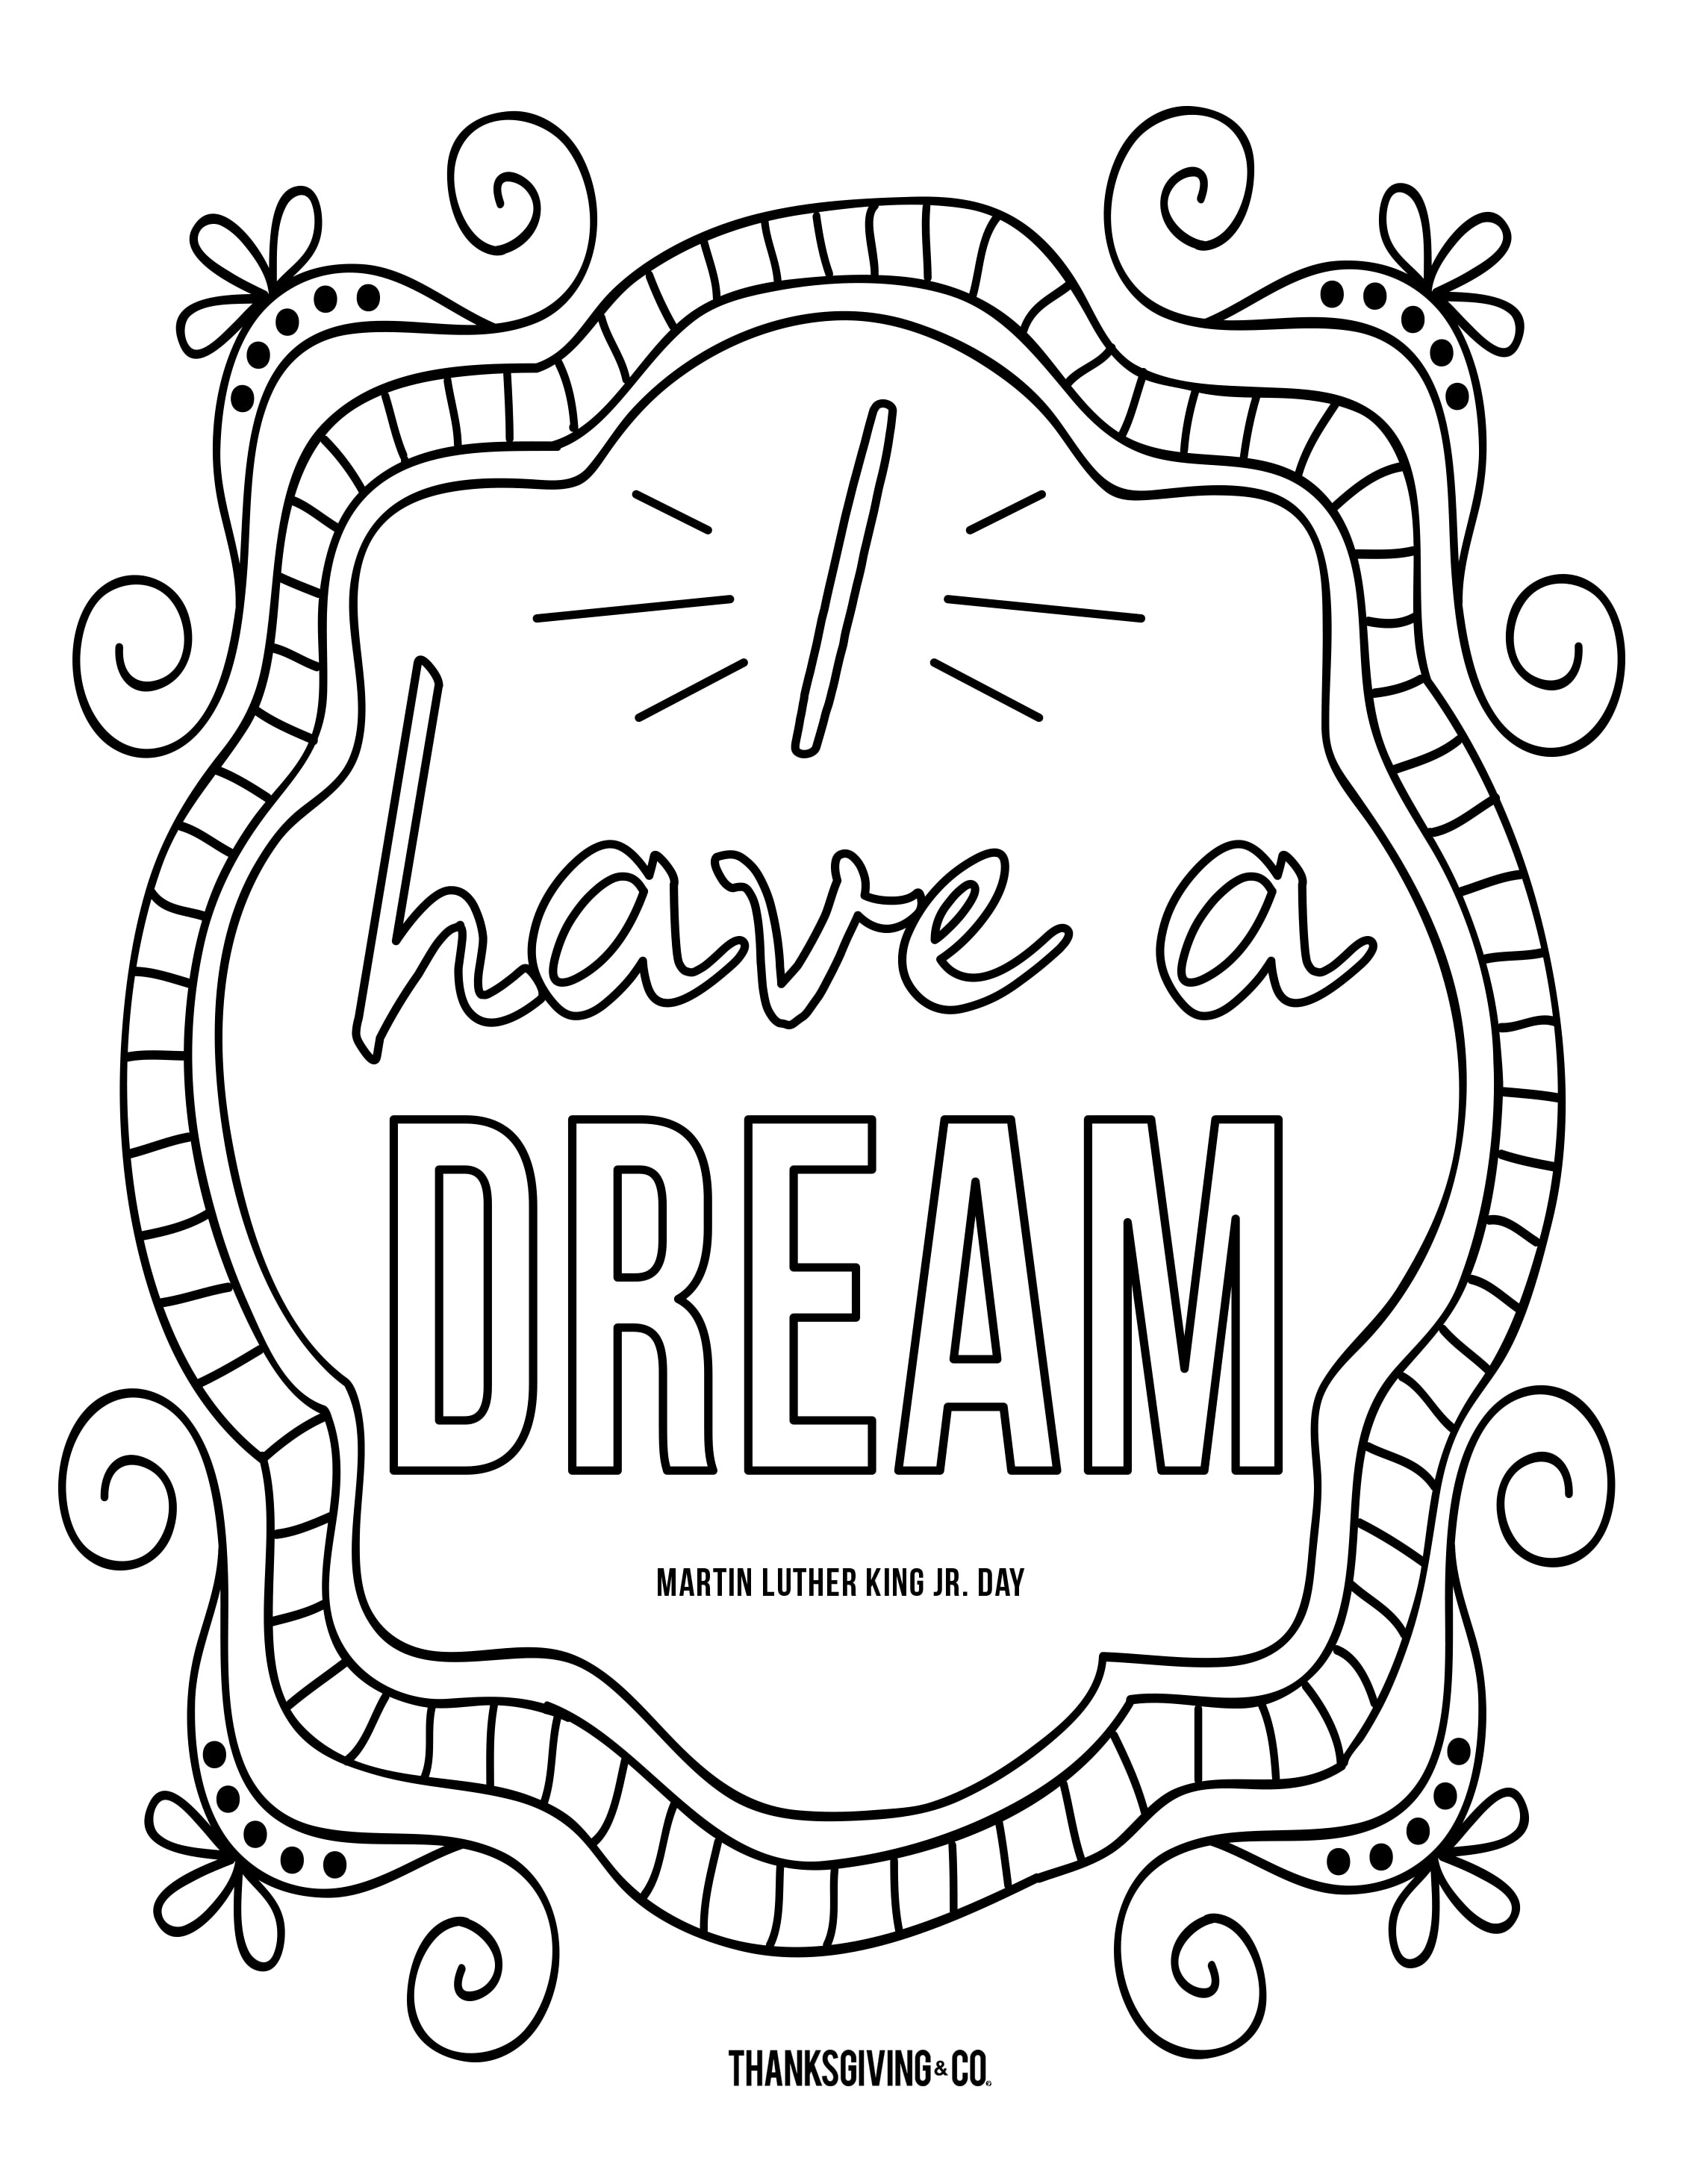 Share These Fun Martin Luther King Jr Coloring Pages With